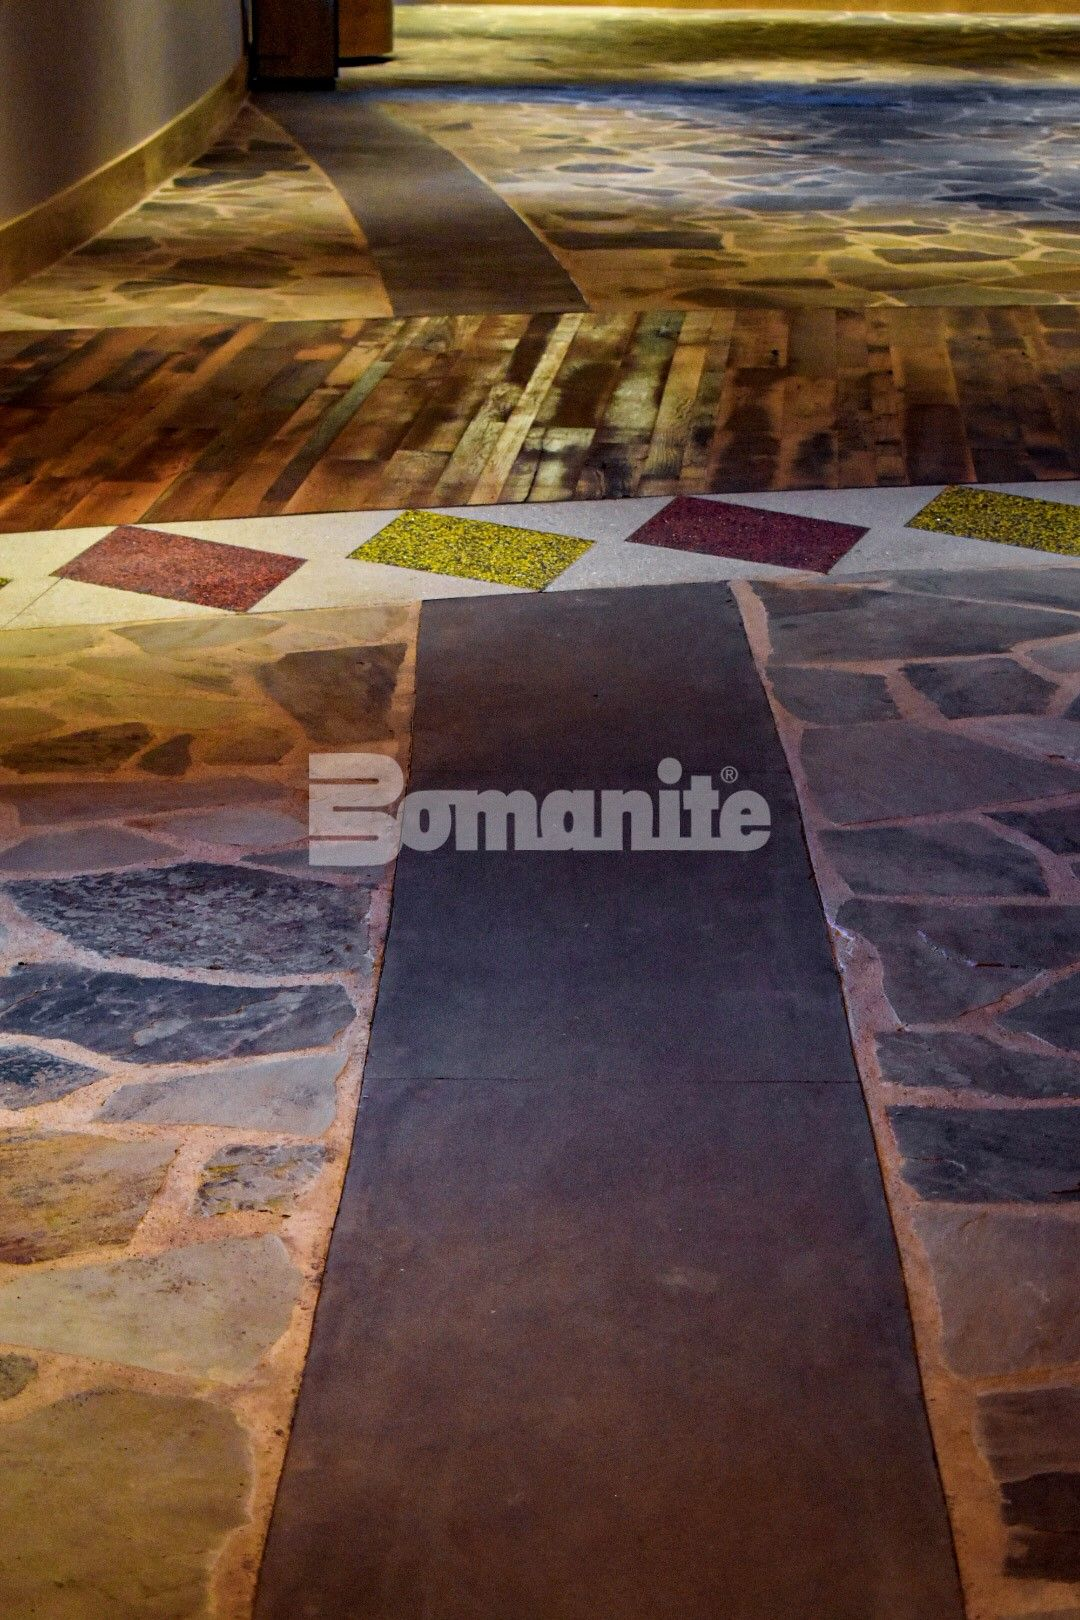 Bomanite of Tulsa, Inc worked with the Choctaw Cultural Center to bring to life the art and design for the interior entrance flooring with the Bomanite Revealed and Bomanite Sandscape Exposed Aggregate Systems